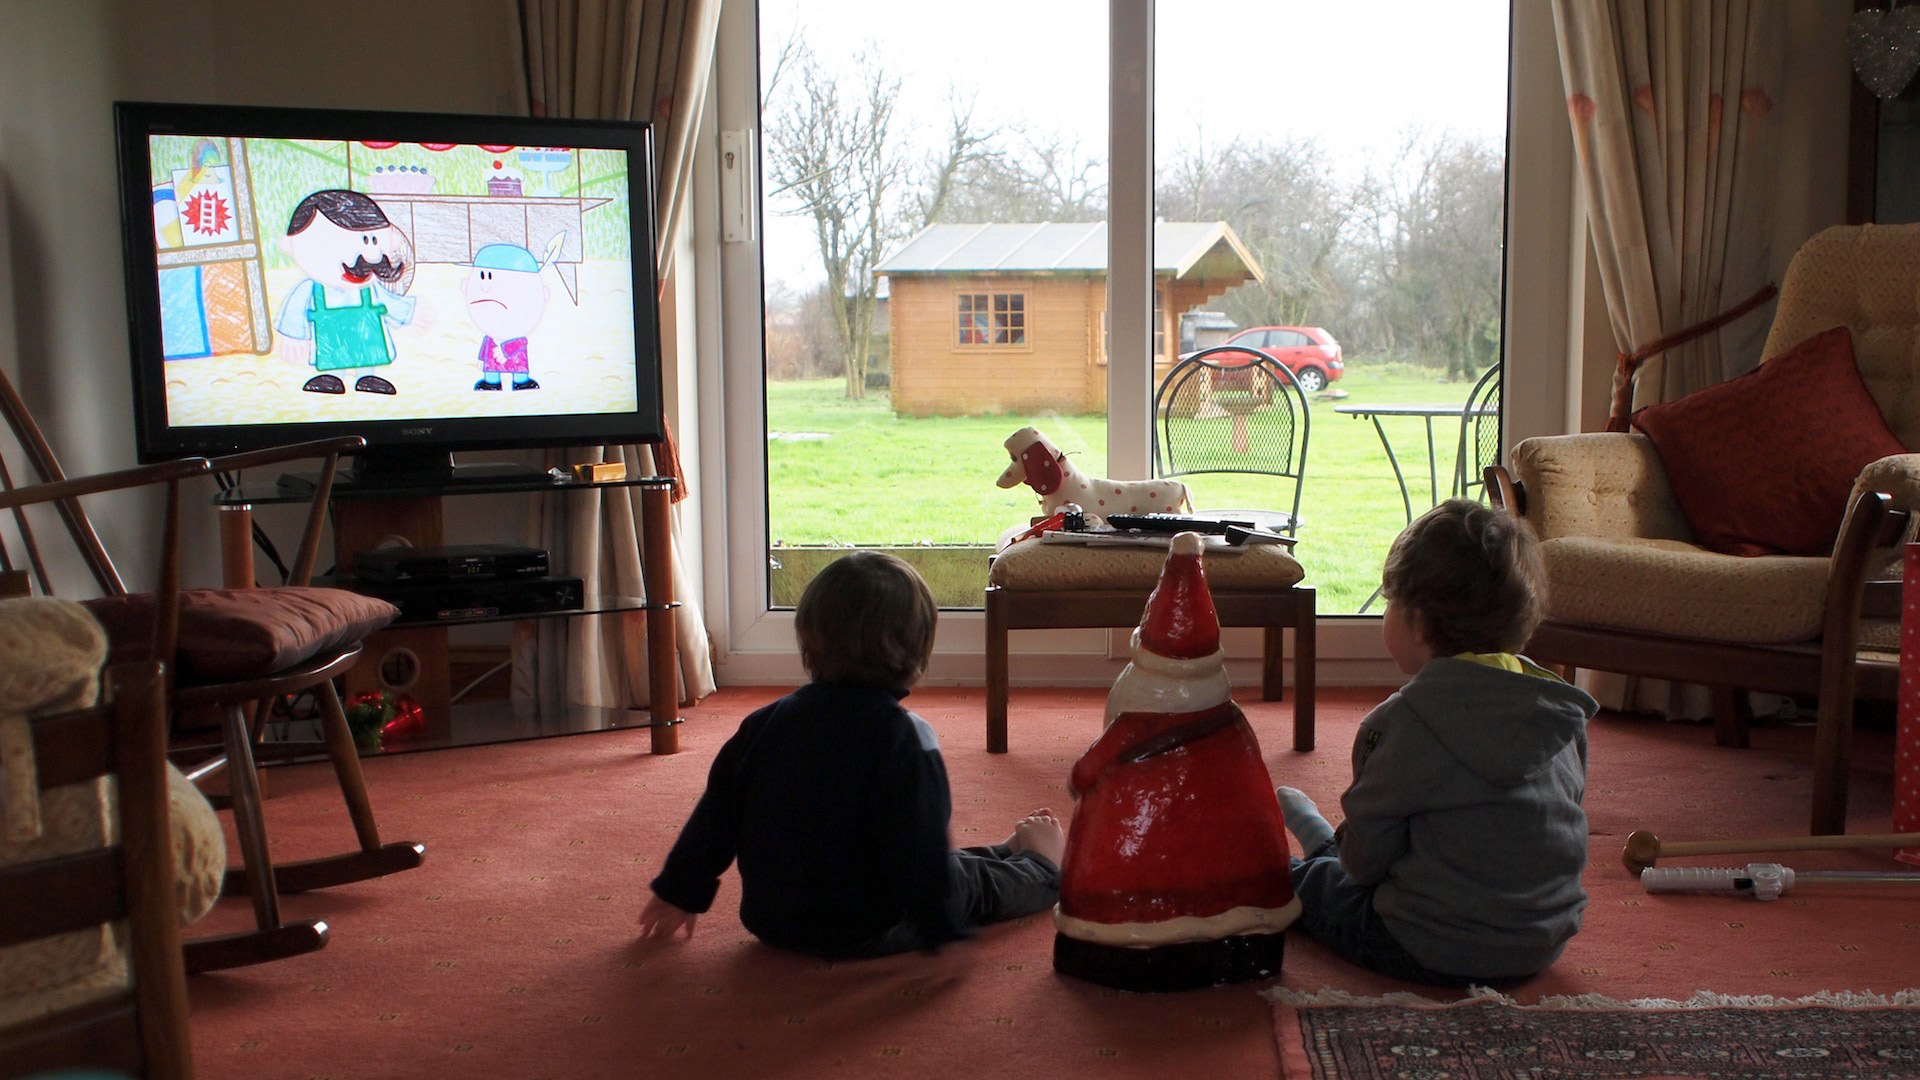 Researchers describe increased screen time as one of the top family concerns during the COVID-19 pandemic.